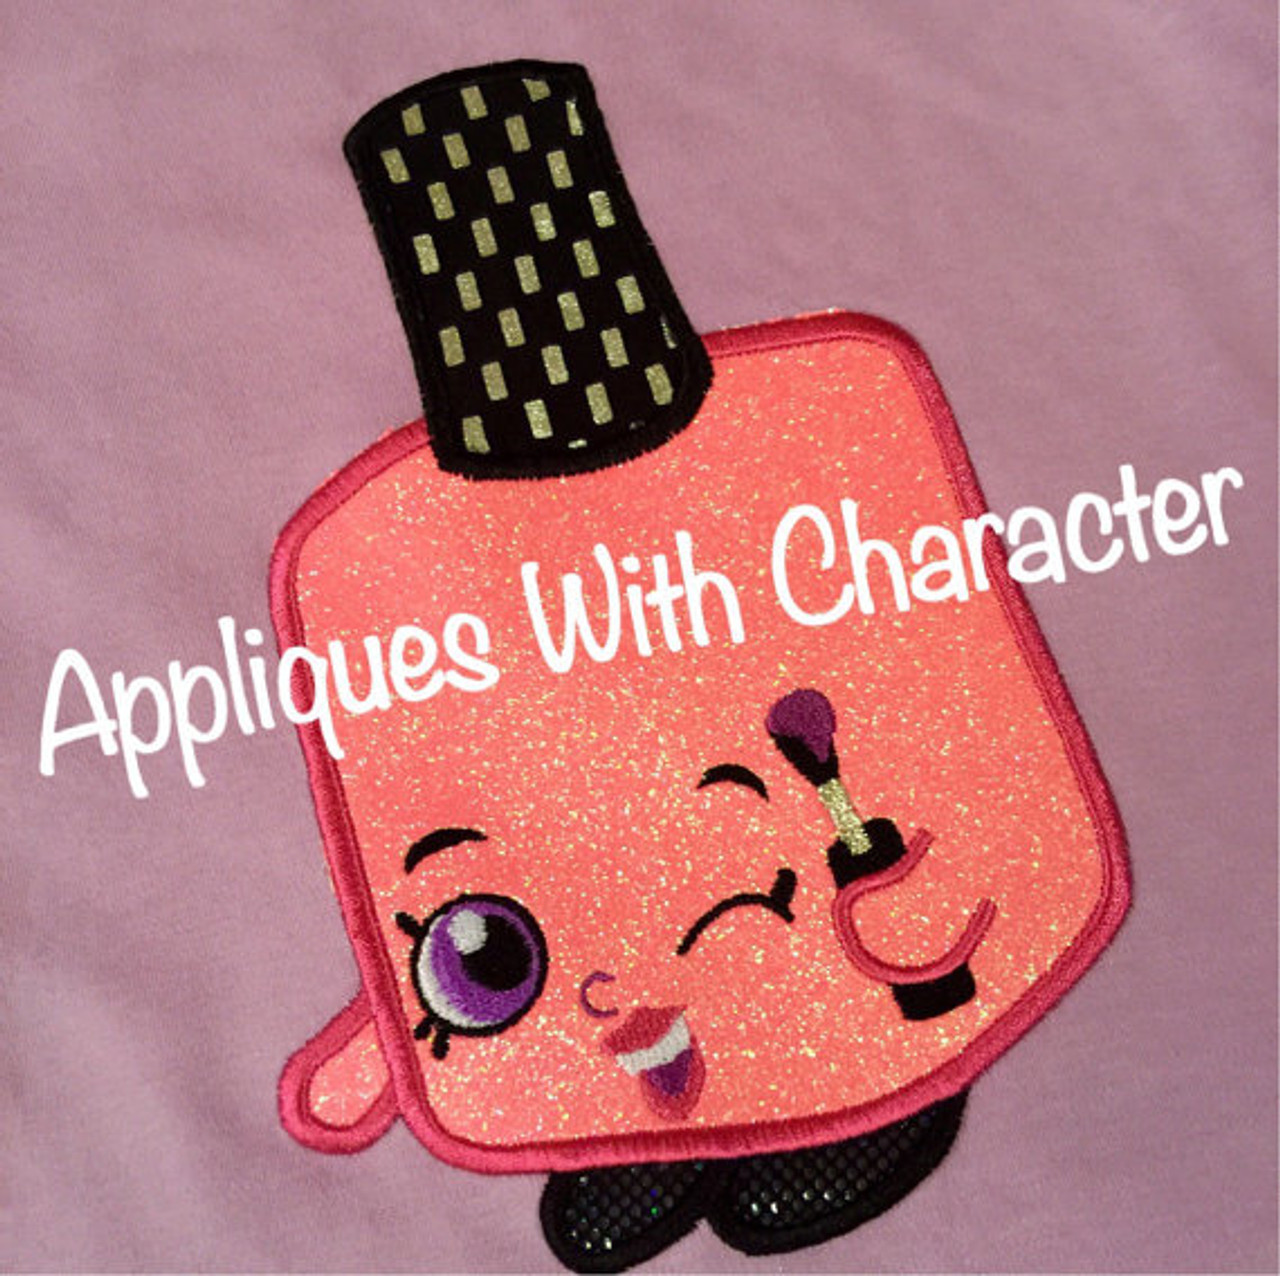 Shopikins Polly Nail Polish Applique Design by Appliques With Character